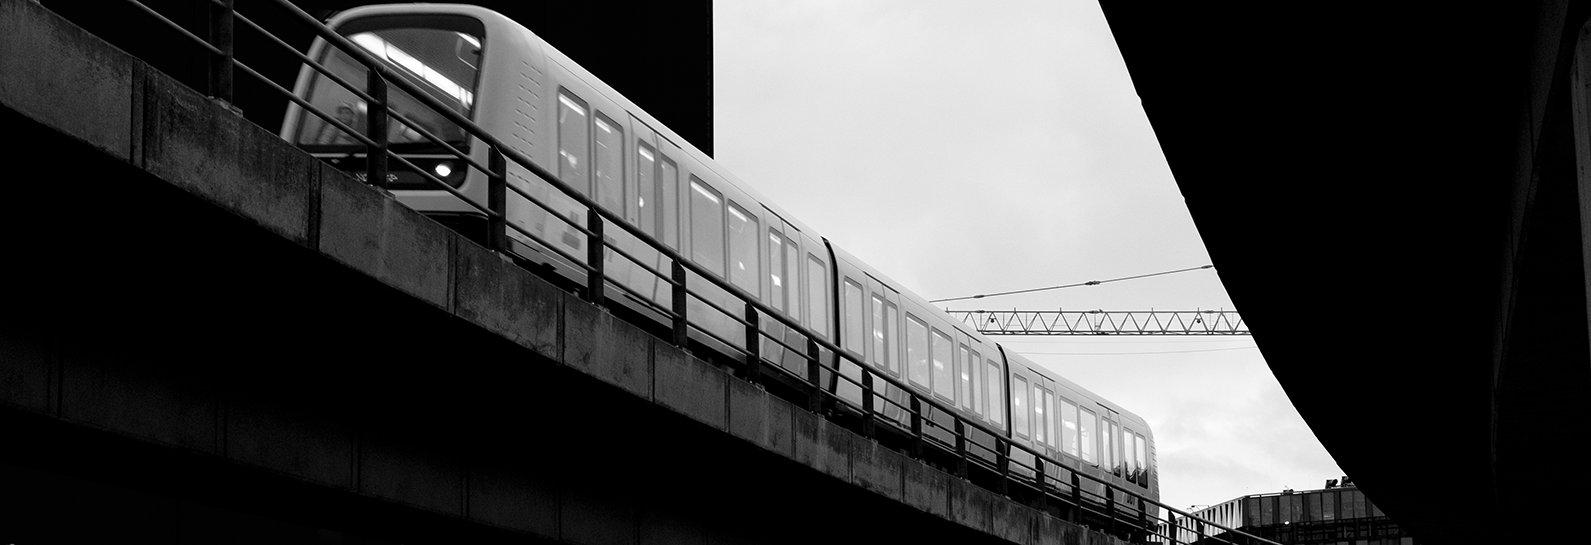 Train running along elevated section of Nordhaven Metro